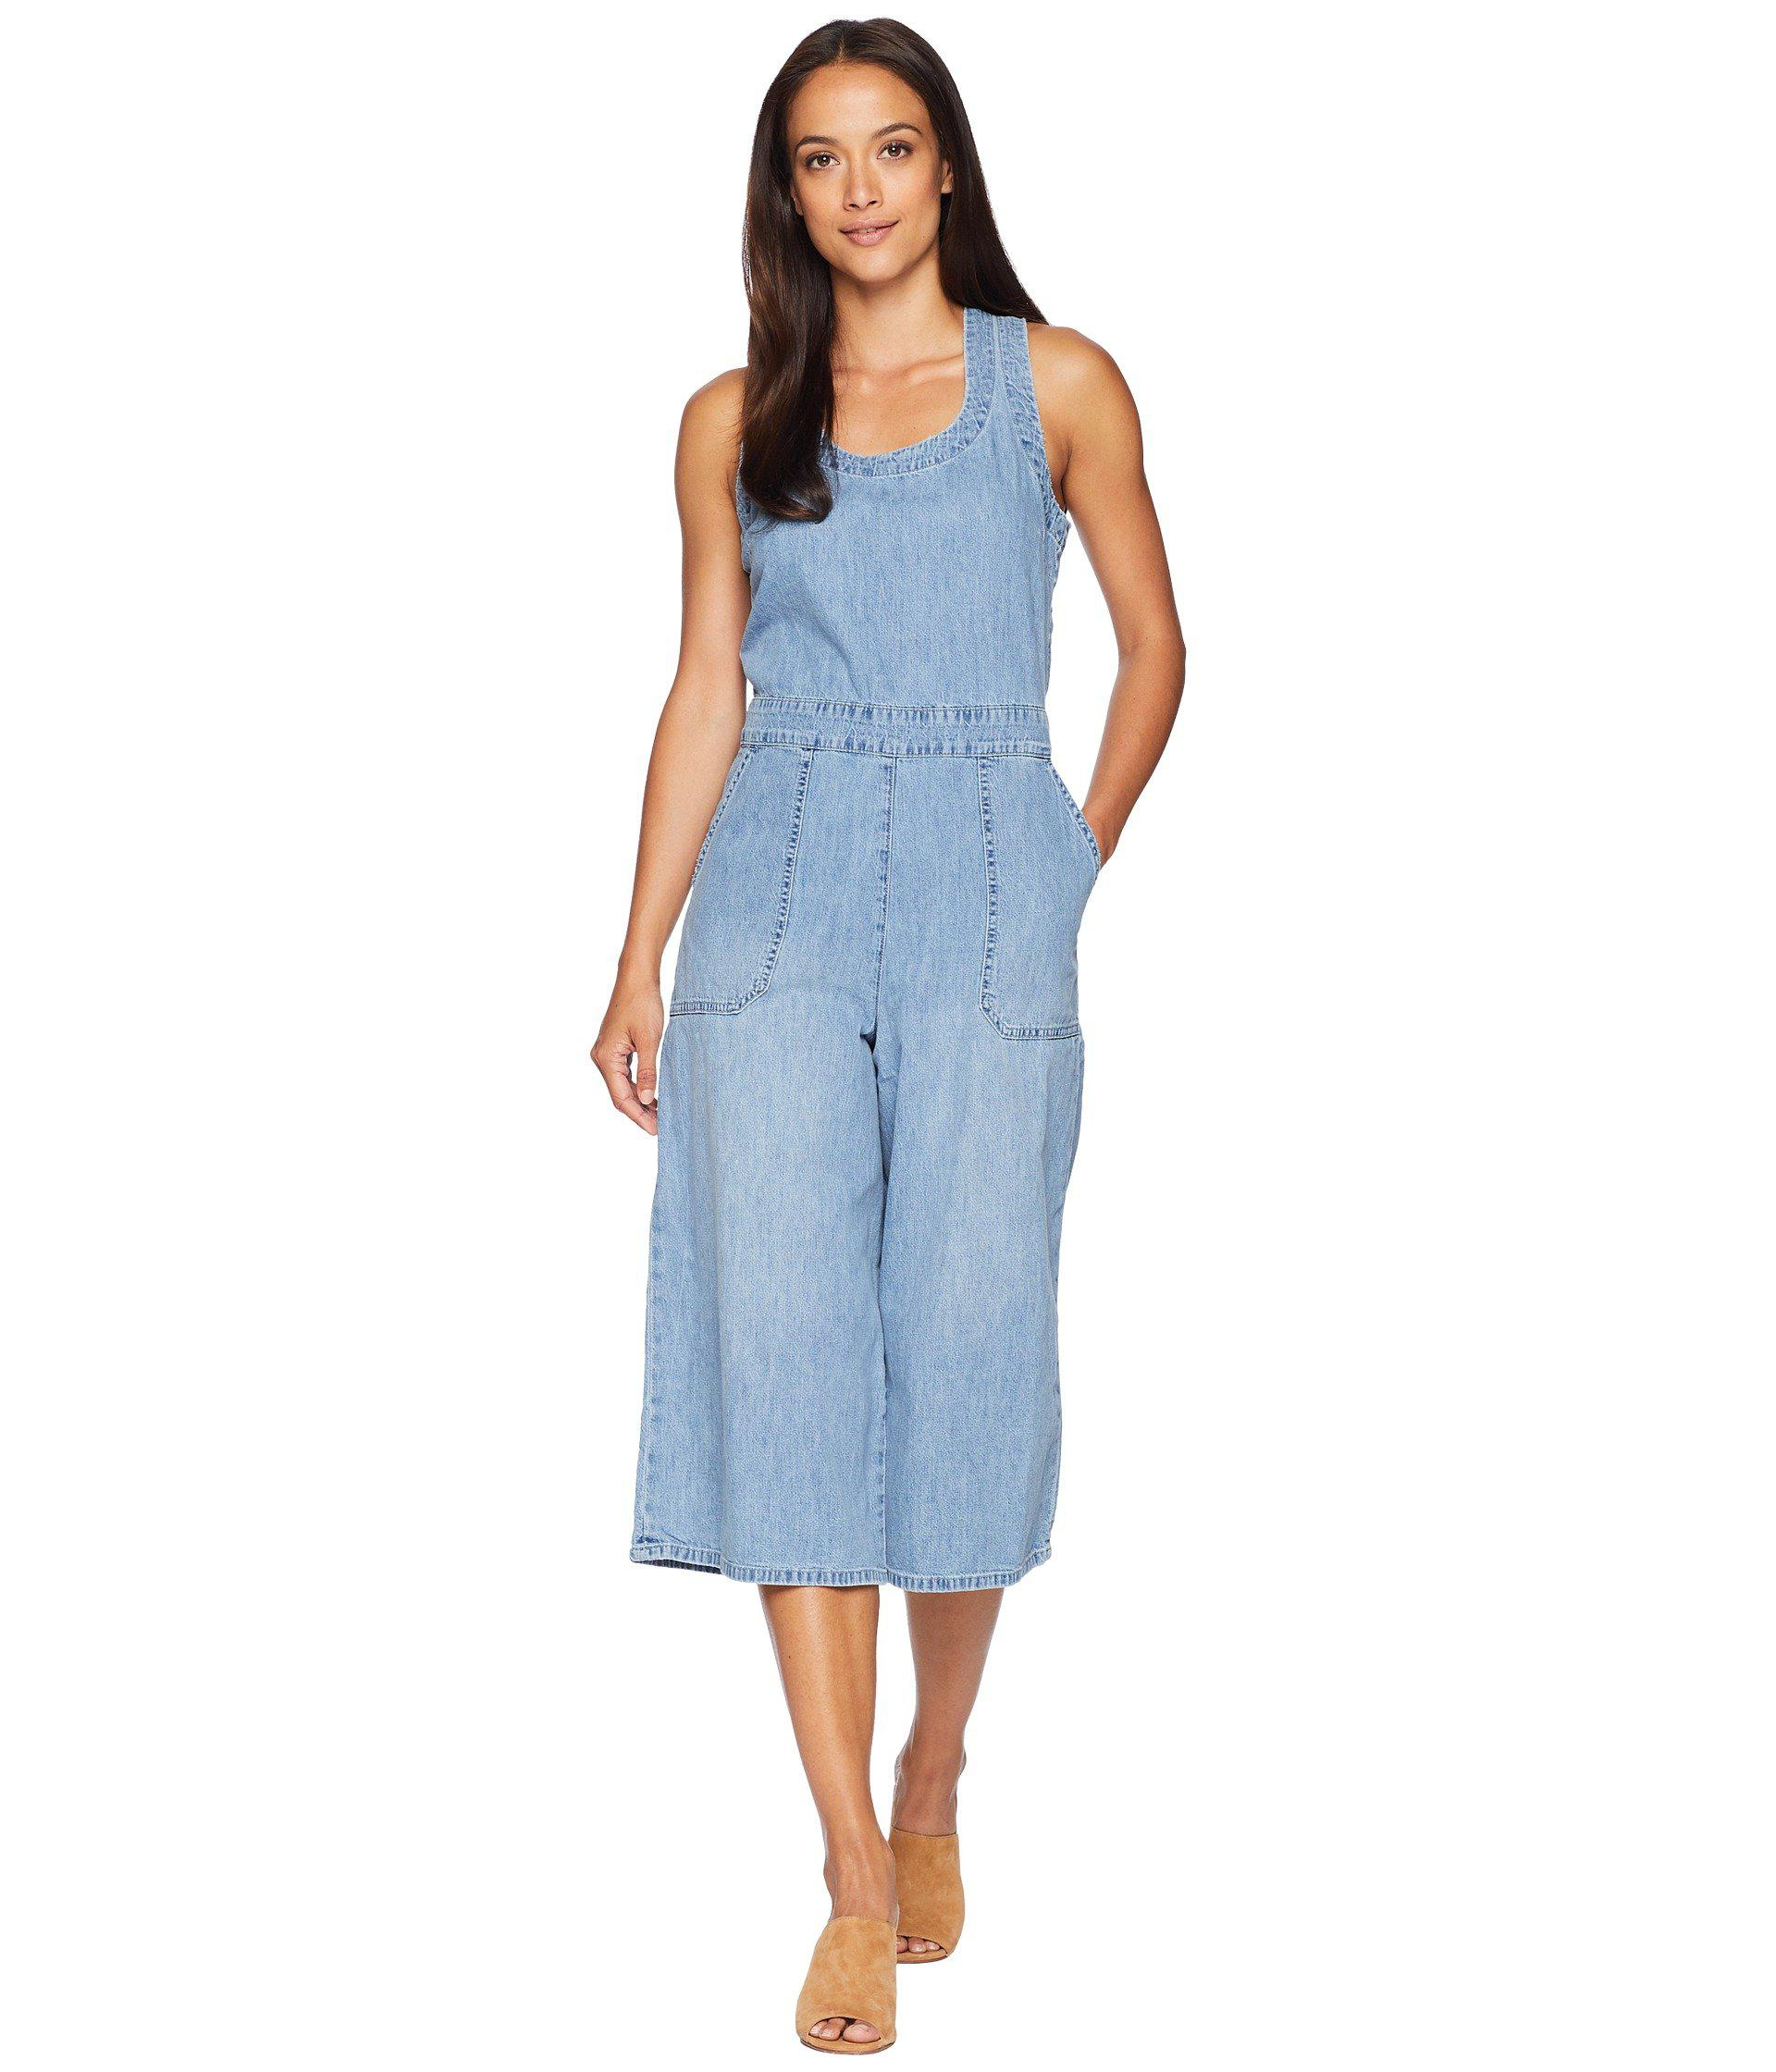 8b72bfdee58 Lyst - Lucky Brand Culotte Jumpsuit In Garford in Blue